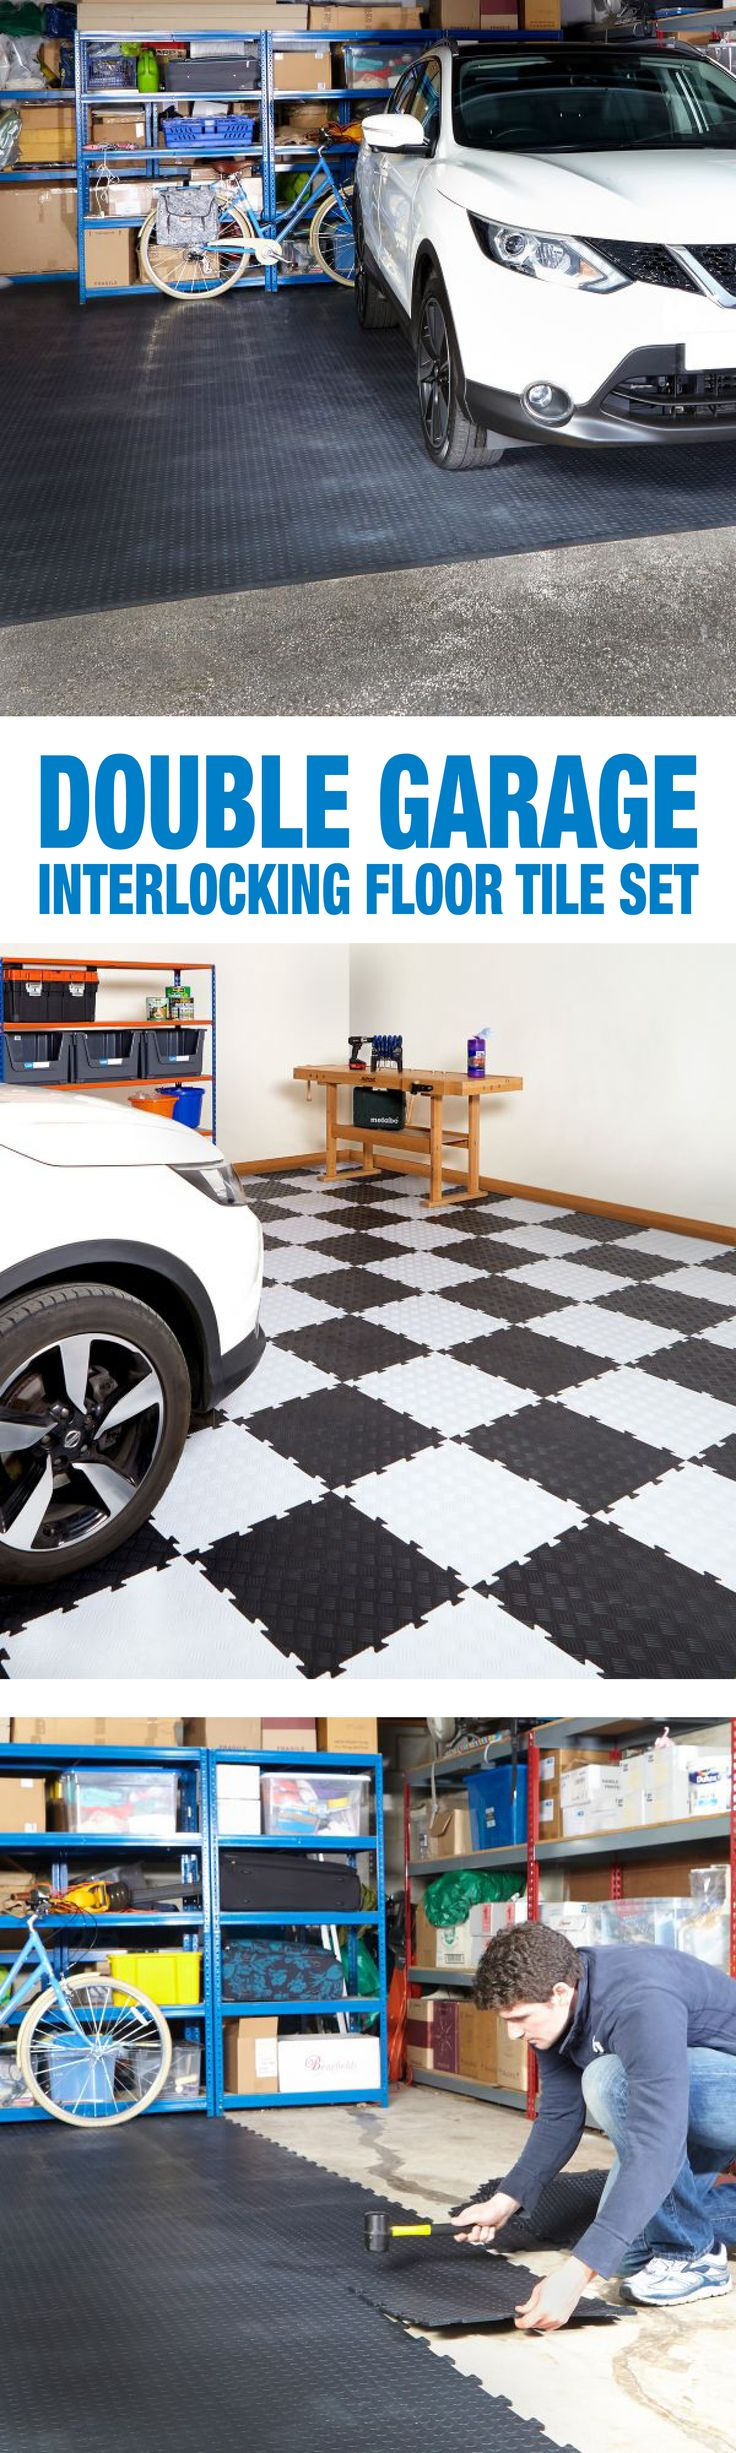 Double Garage Interlocking Floor Tile Set  Each kit is supplied with everything needed to transform a 6 x 6 meter double garage. Included in the kit are all necessary floor tiles, entrance ramps and two assembly mallets.  The tiles are loose laid and require no adhesive, simply tap the jigsaw joints together and cut any edges to suit your space.  Available in Black or Checkered